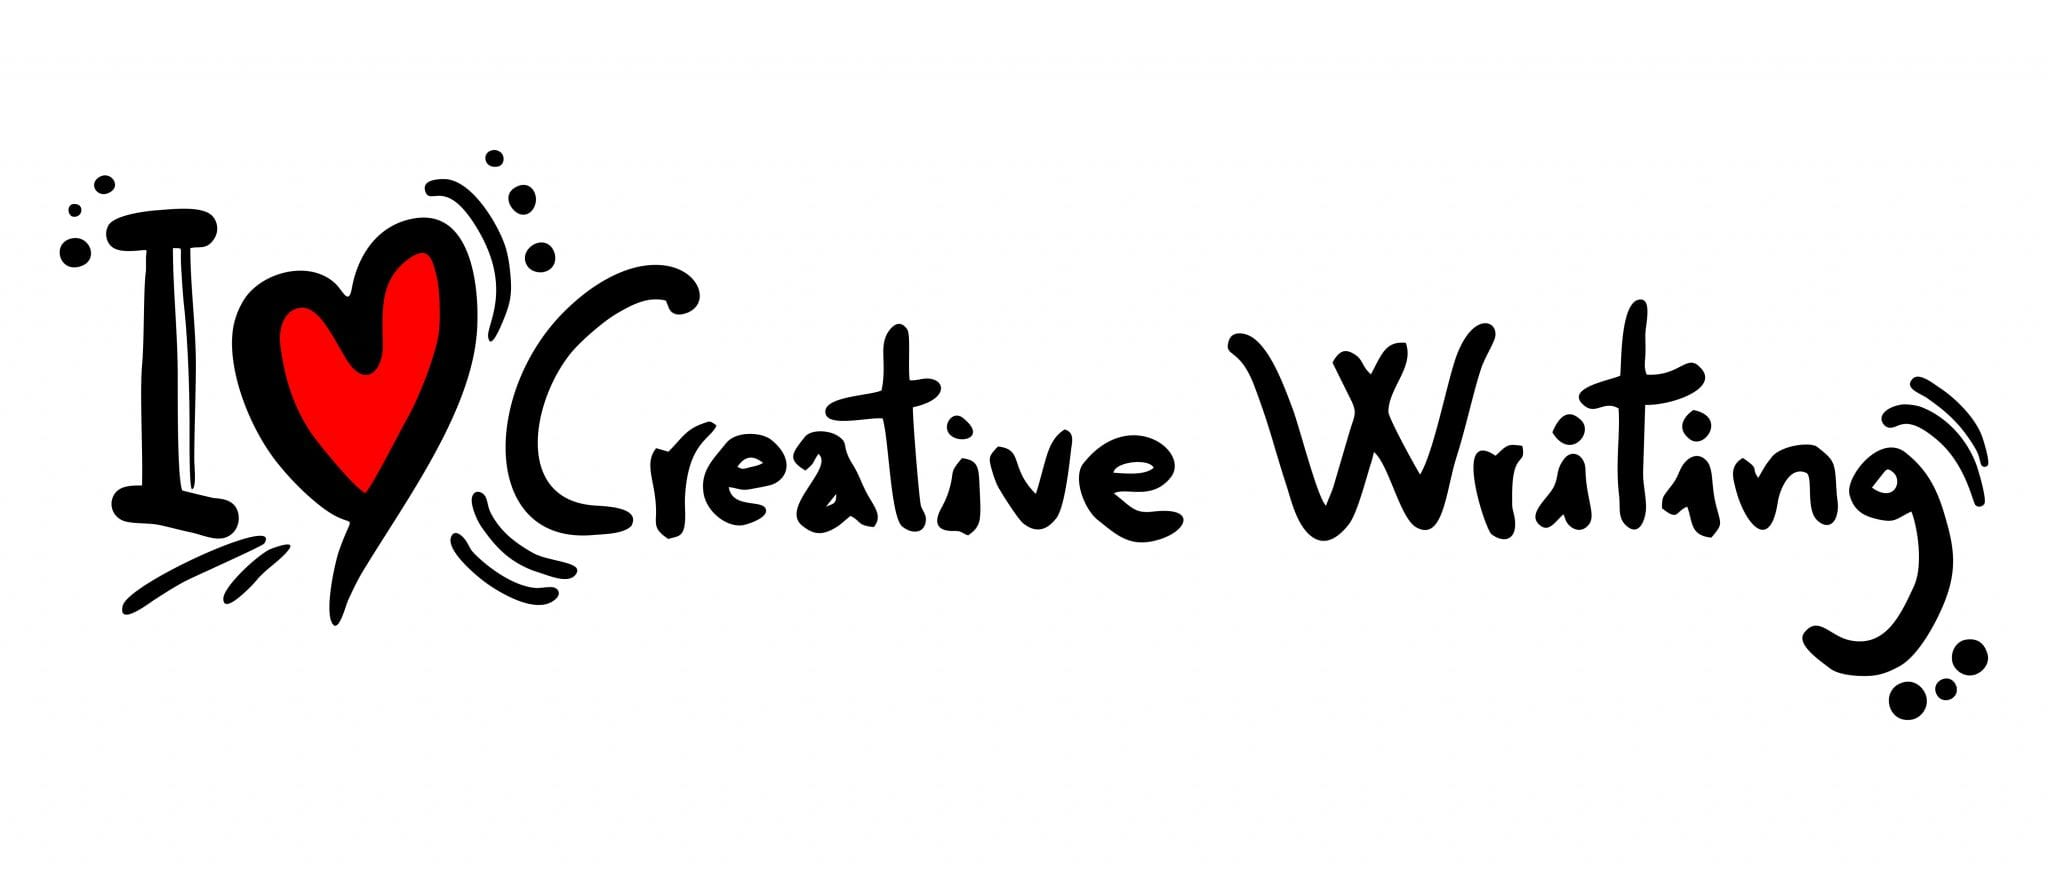 Choose Your Own Adventure Stories Using Slides